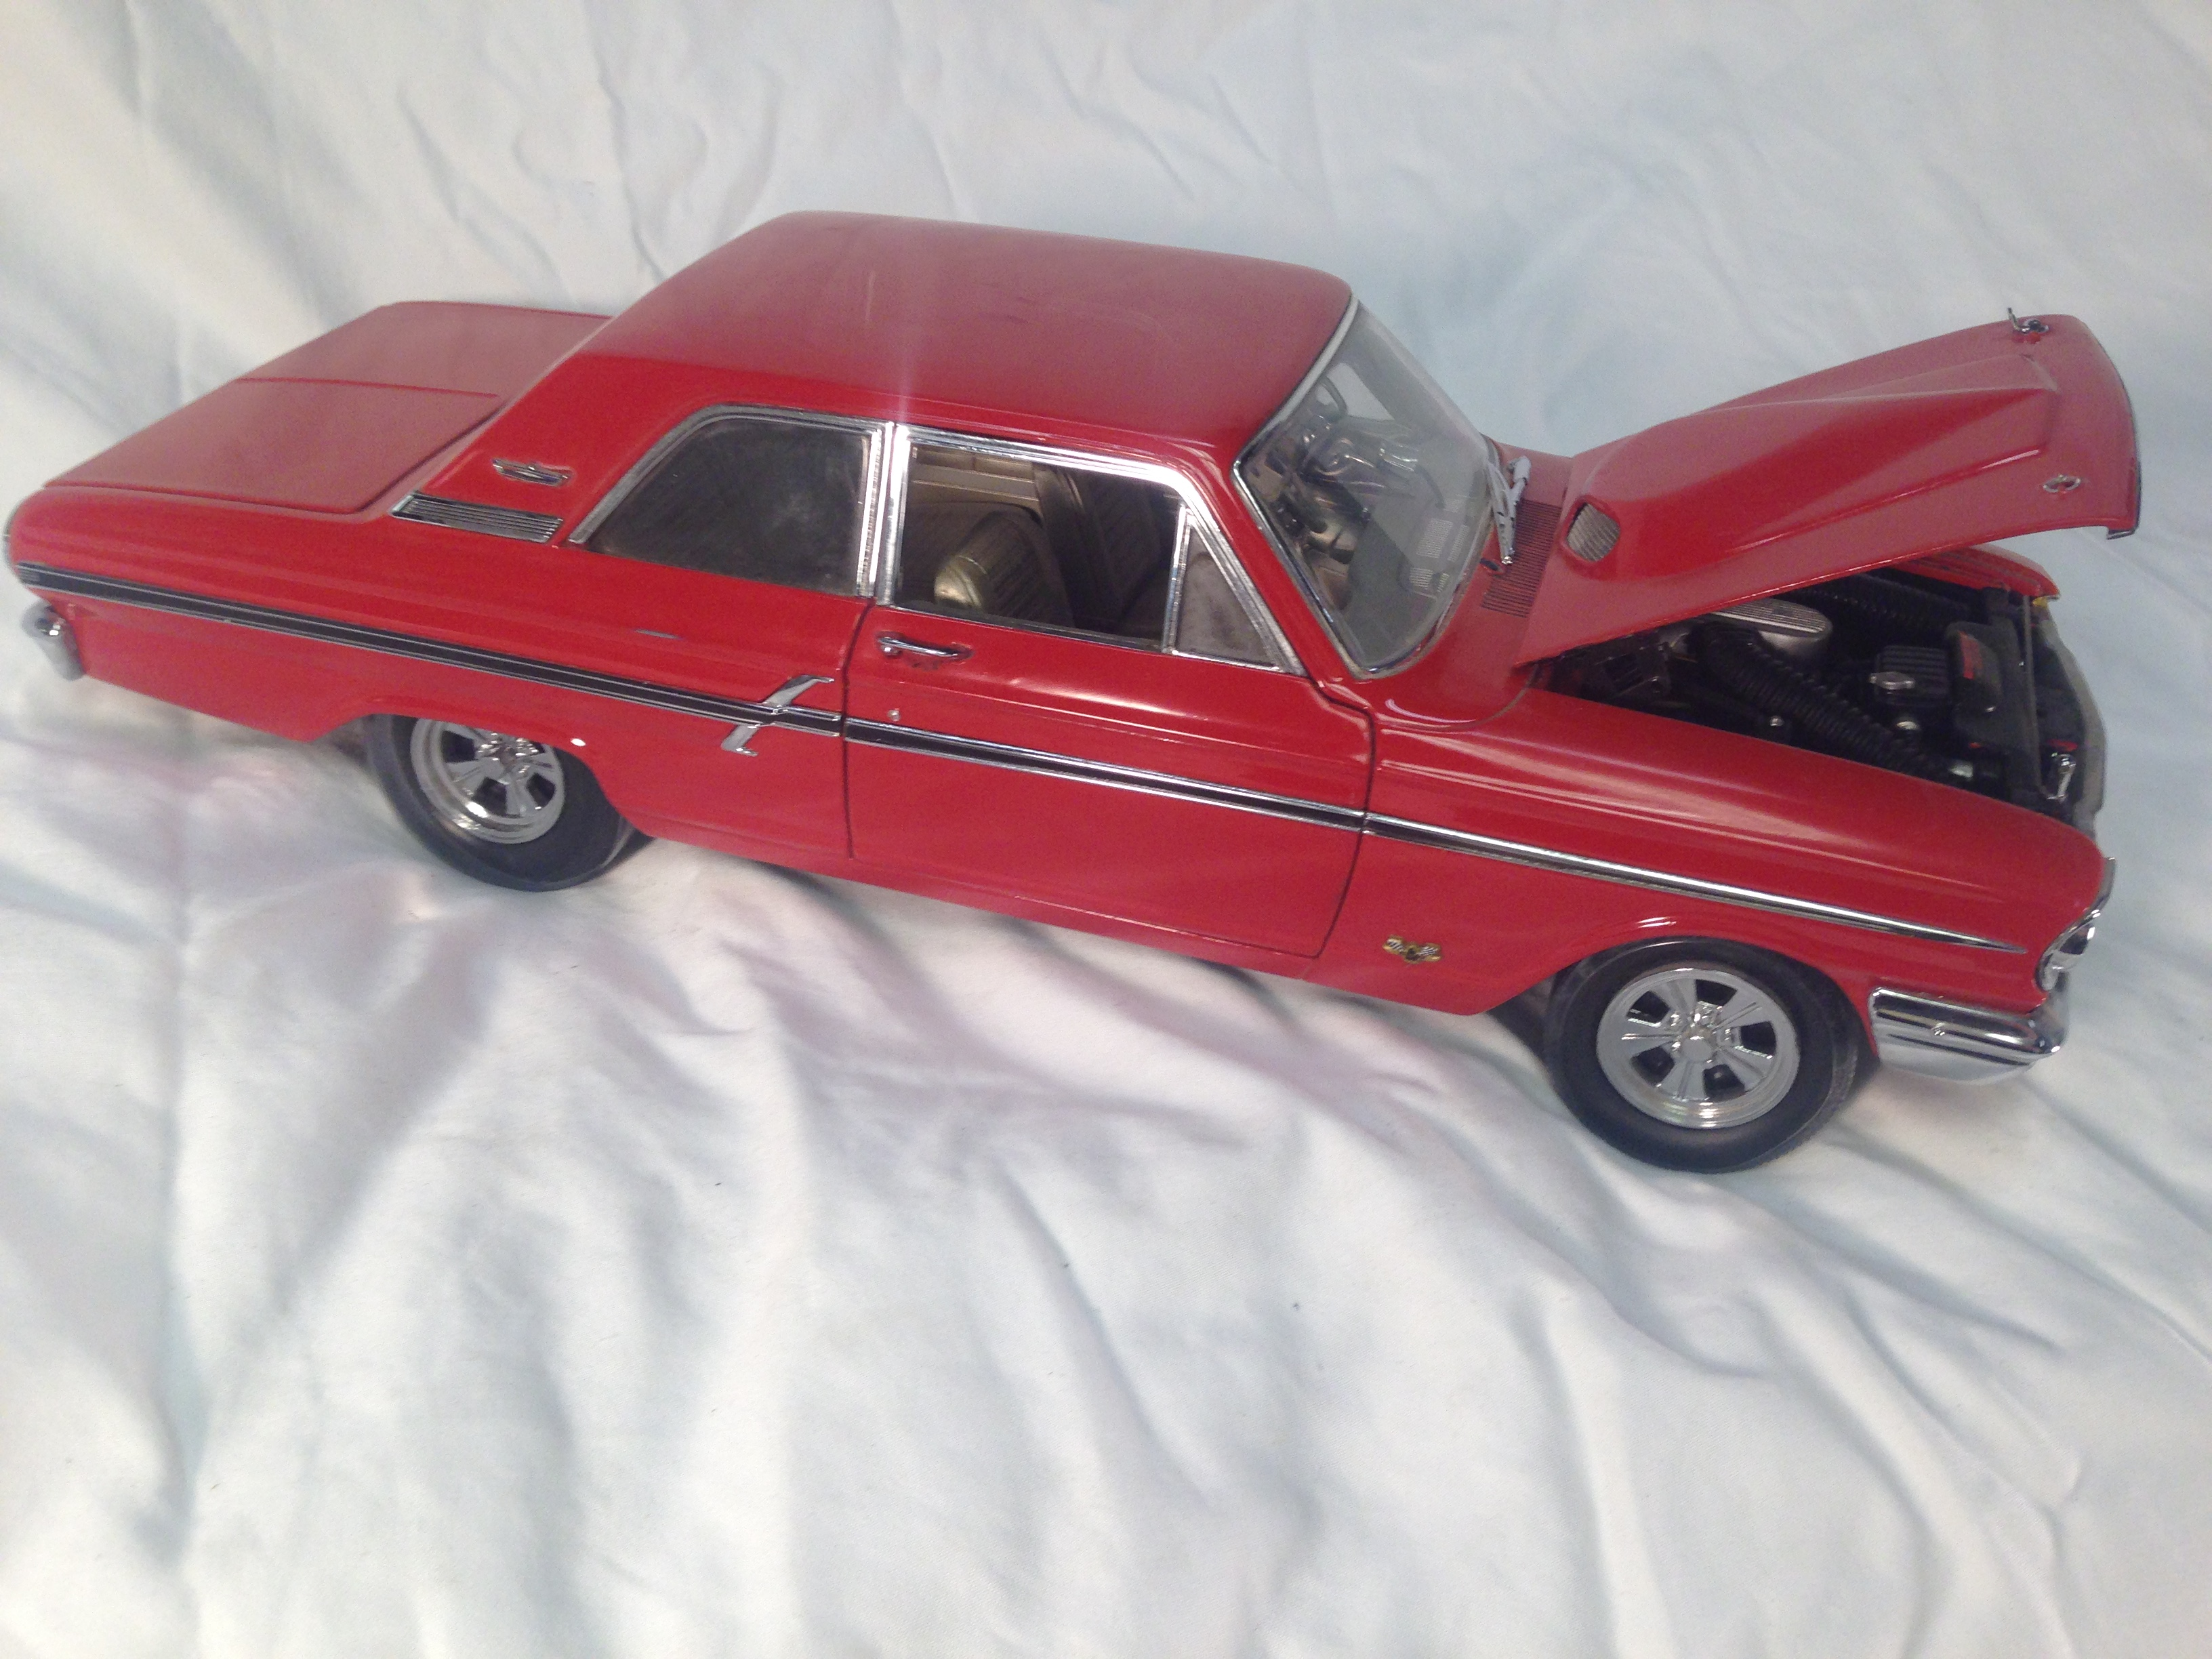 For Sale - model cars and trucks | Trap Shooters Forum